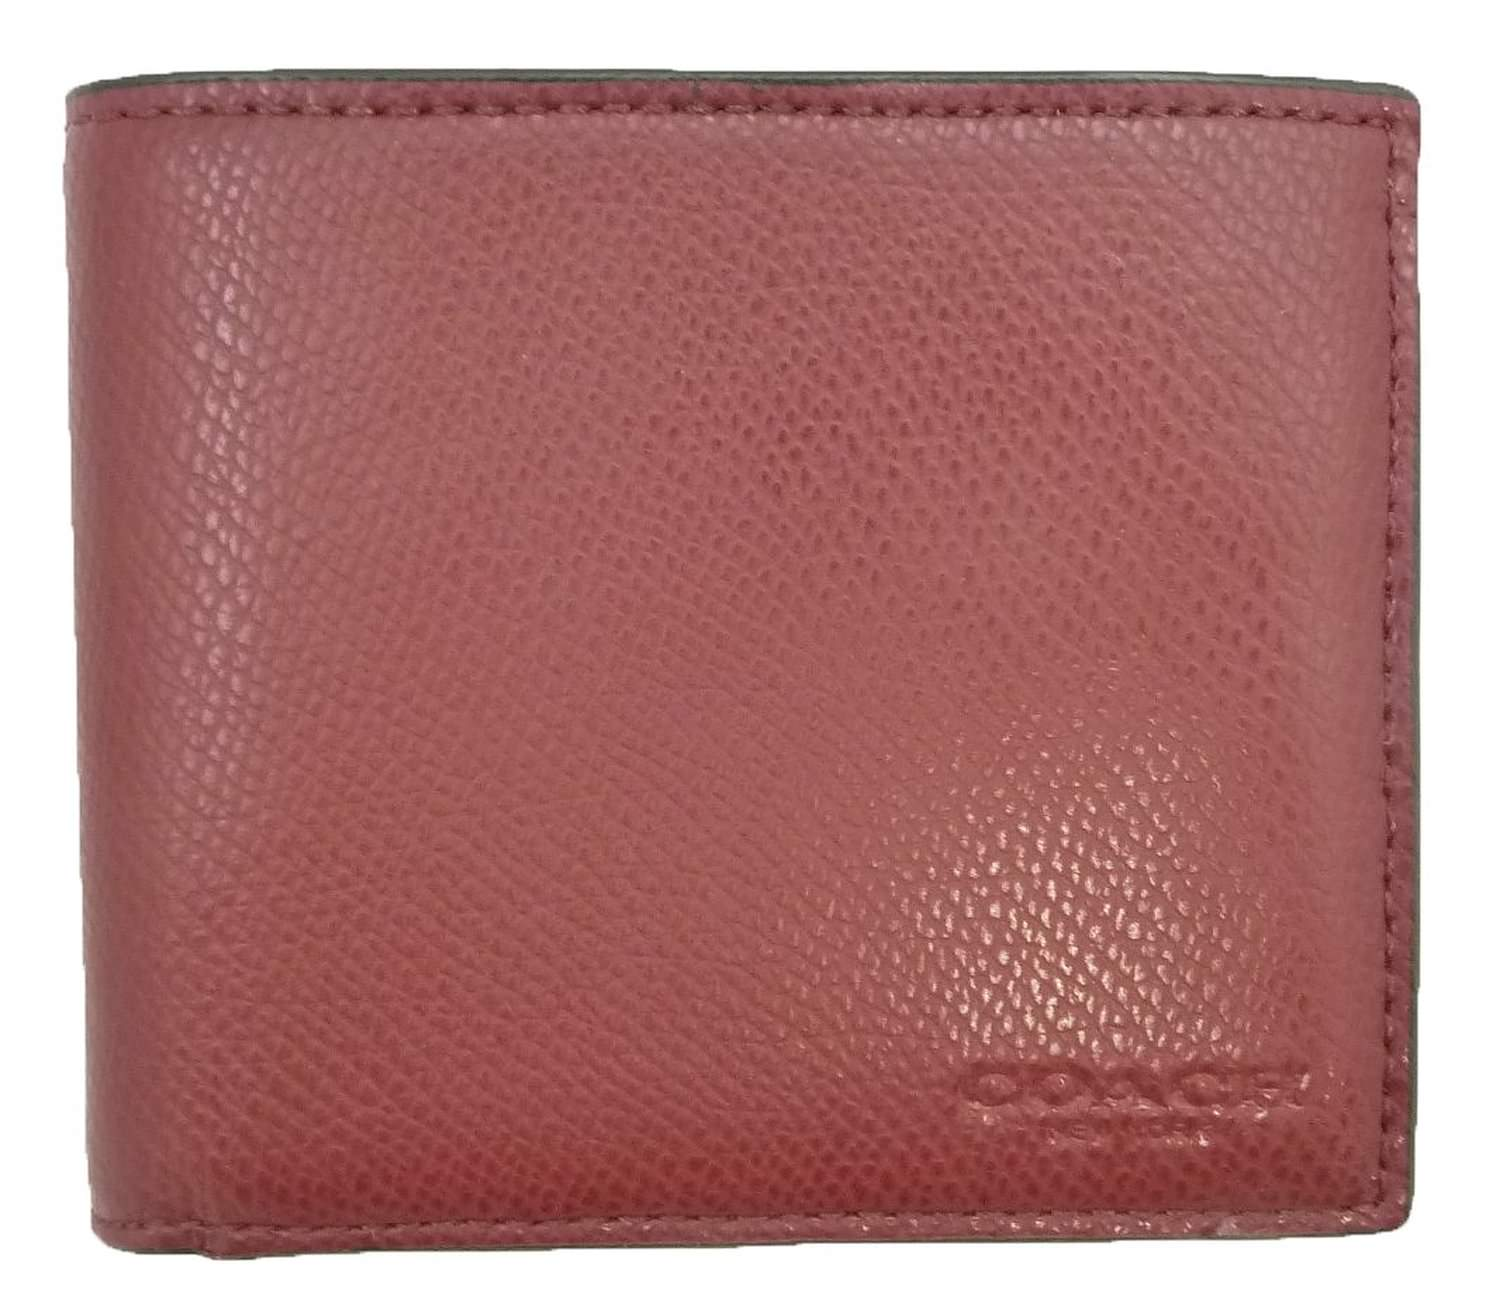 coach leather men wallet balck cherry